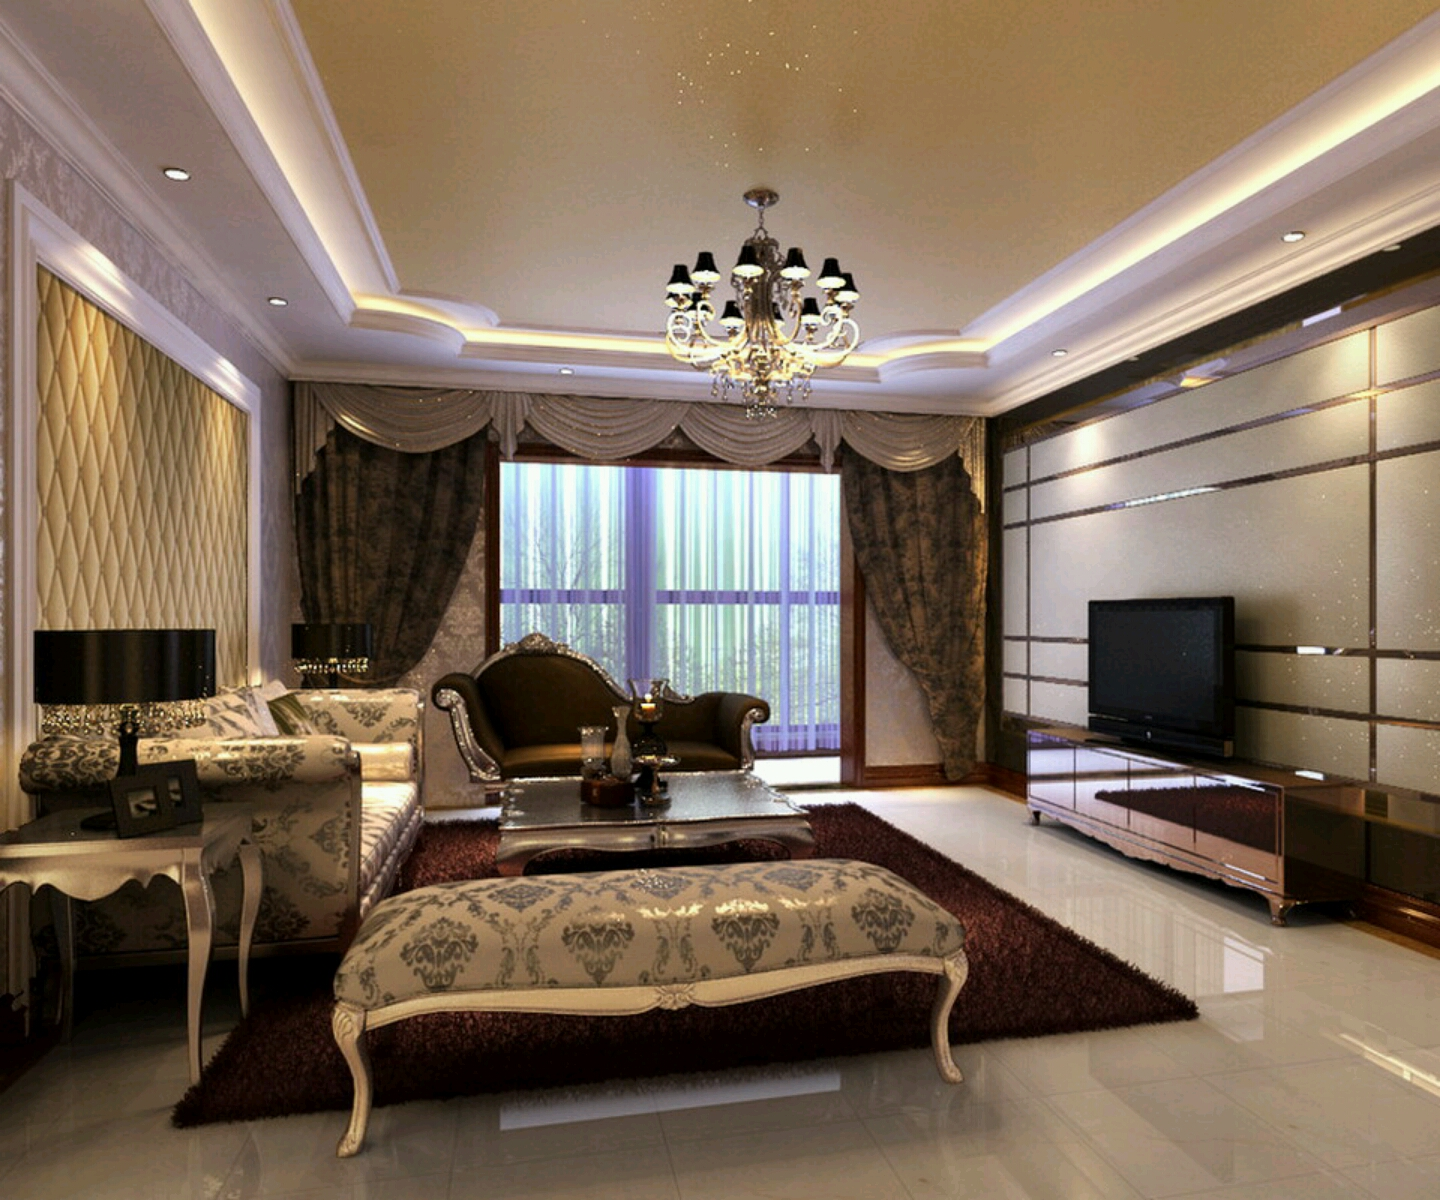 New home designs latest luxury homes interior decoration for Interior design photos living room